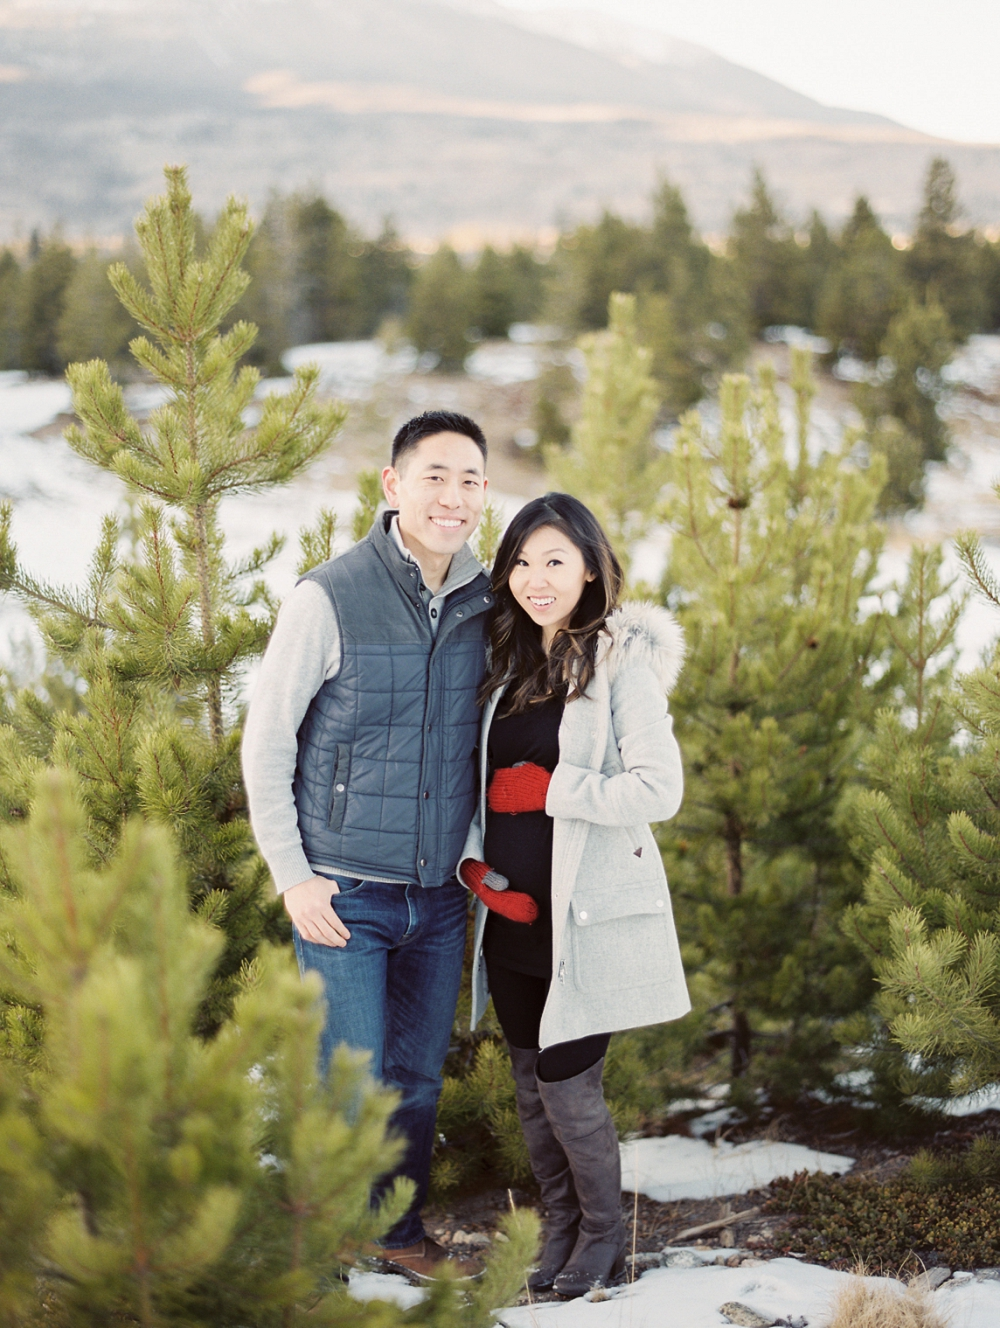 Dani-Cowan-Photography-Snowy-Colorado-Mountain-Maternity-Photoshoot41_WEB